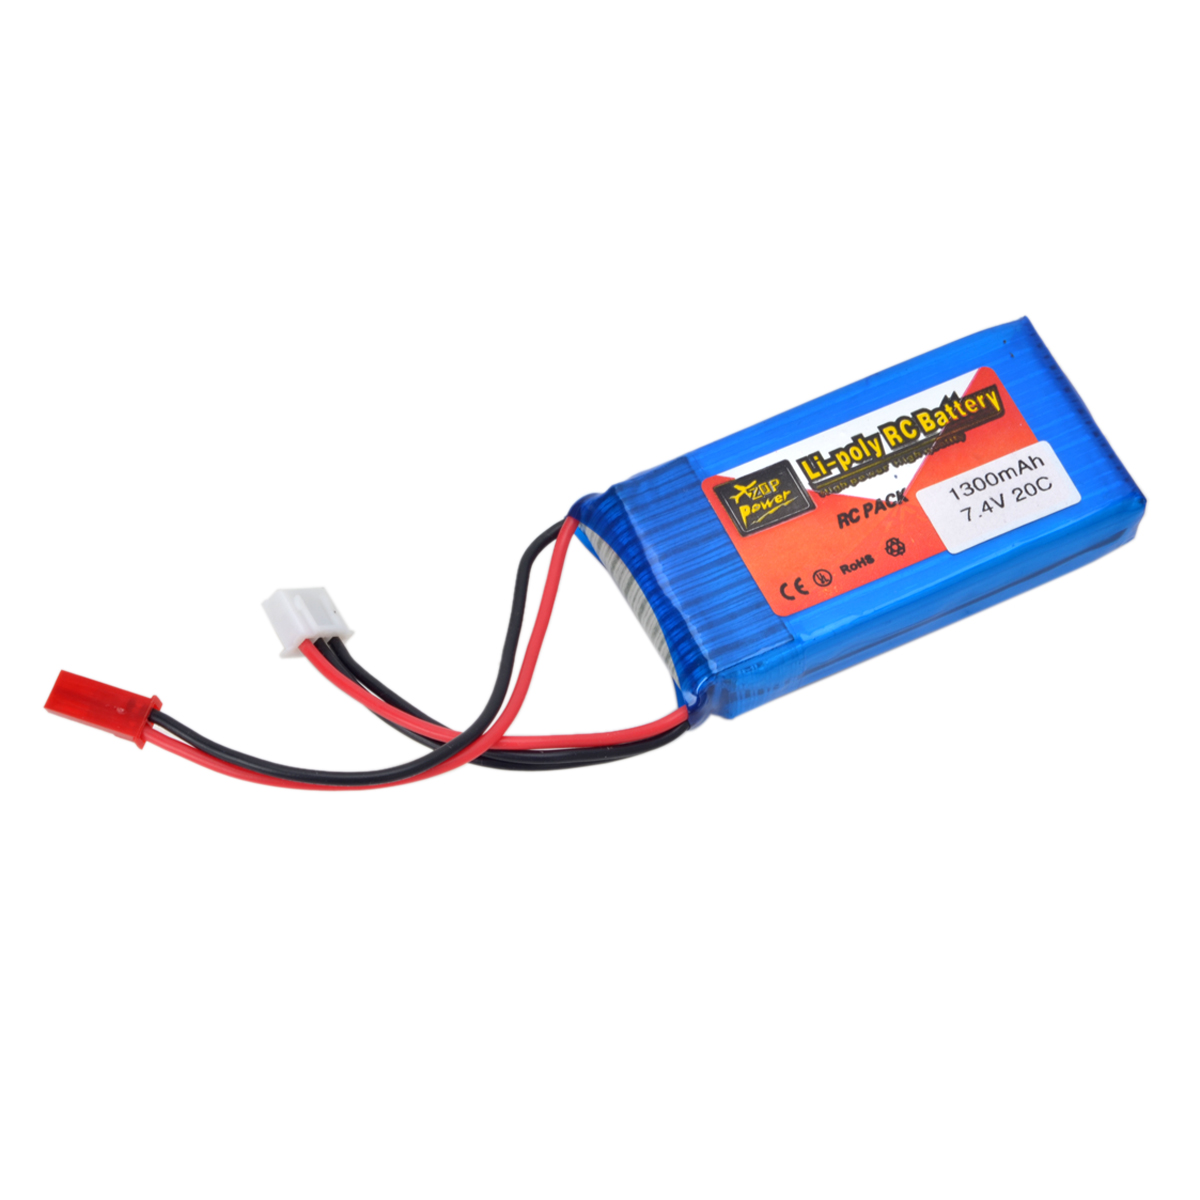 7.4V 1300mAh Lithium Polymer RC Battery for Model Car, Aeroplane